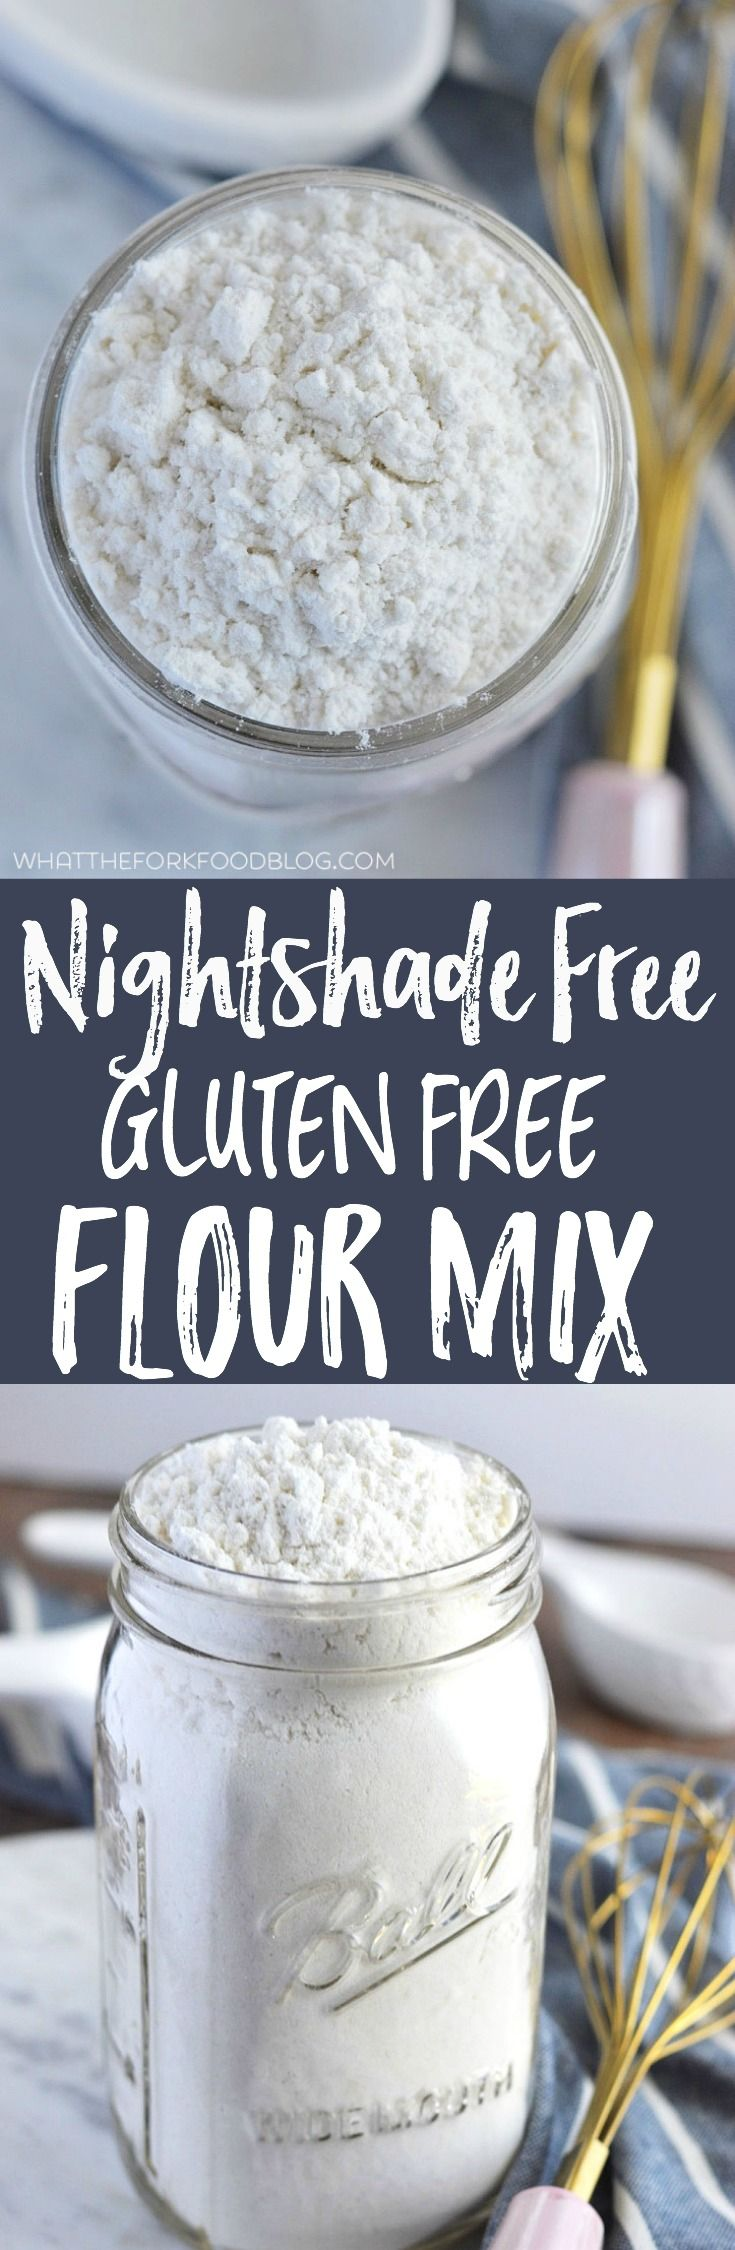 Nightshade-Free Gluten Free Flour Mix (no potato starch) from What The Fork Food Blog | www.whattheforkfoodblog.com